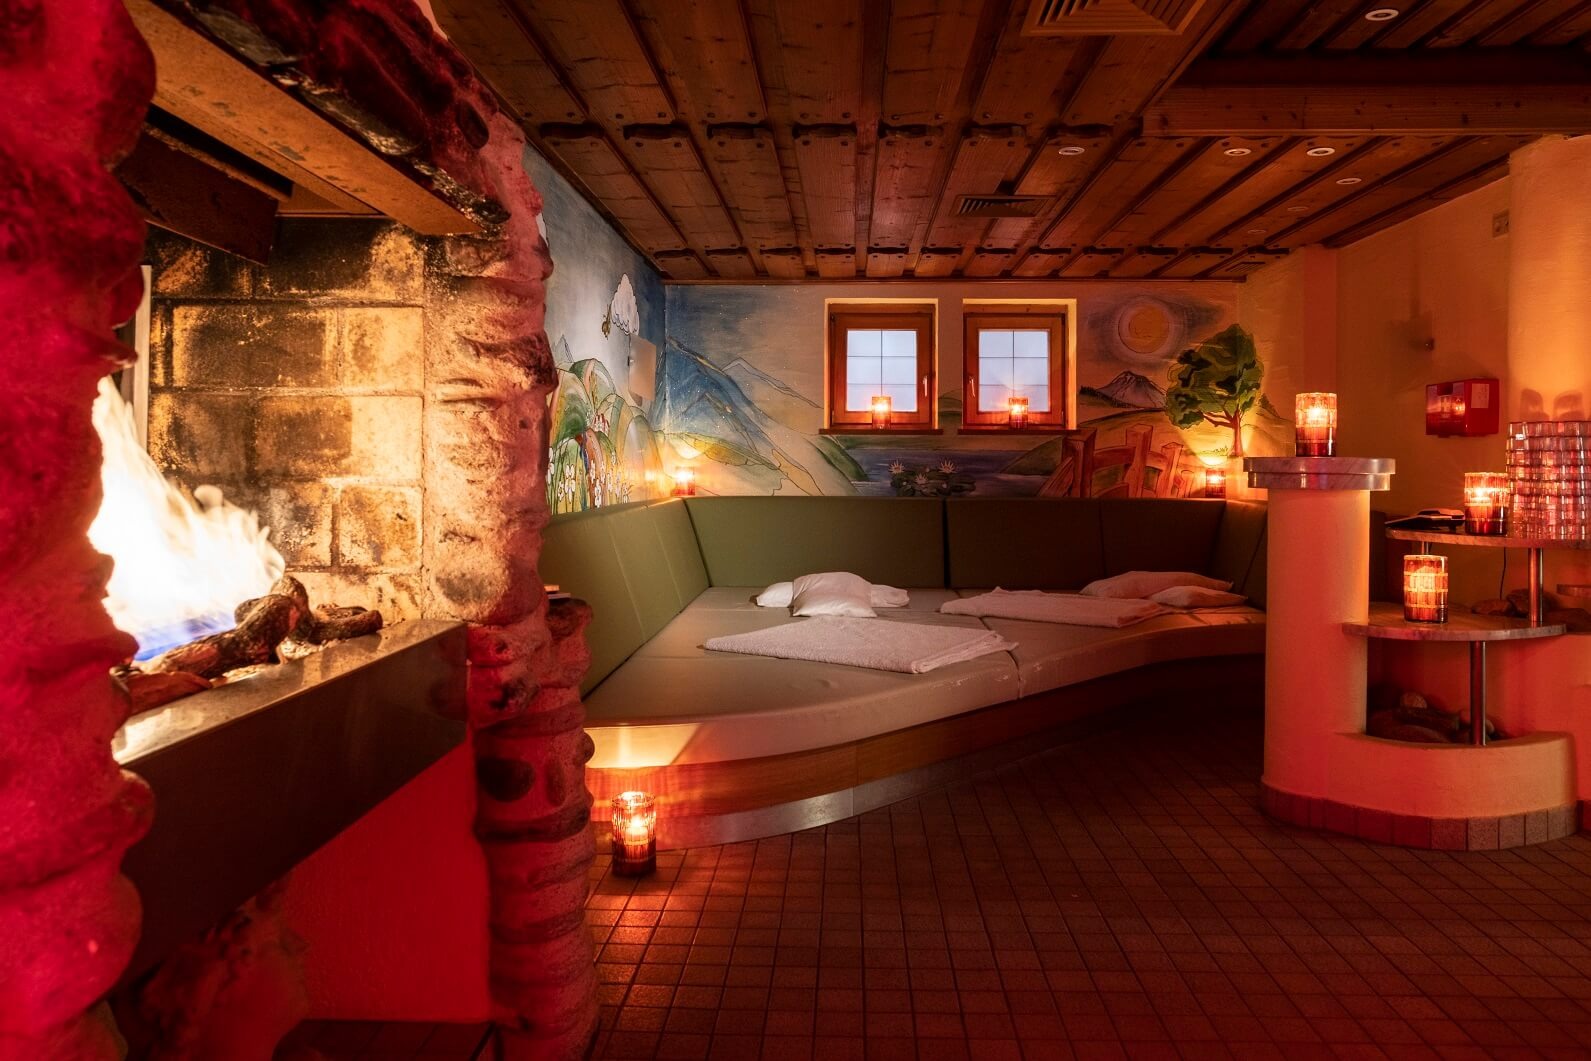 Late Night Wellness im Eschenhof ©gert_perauer